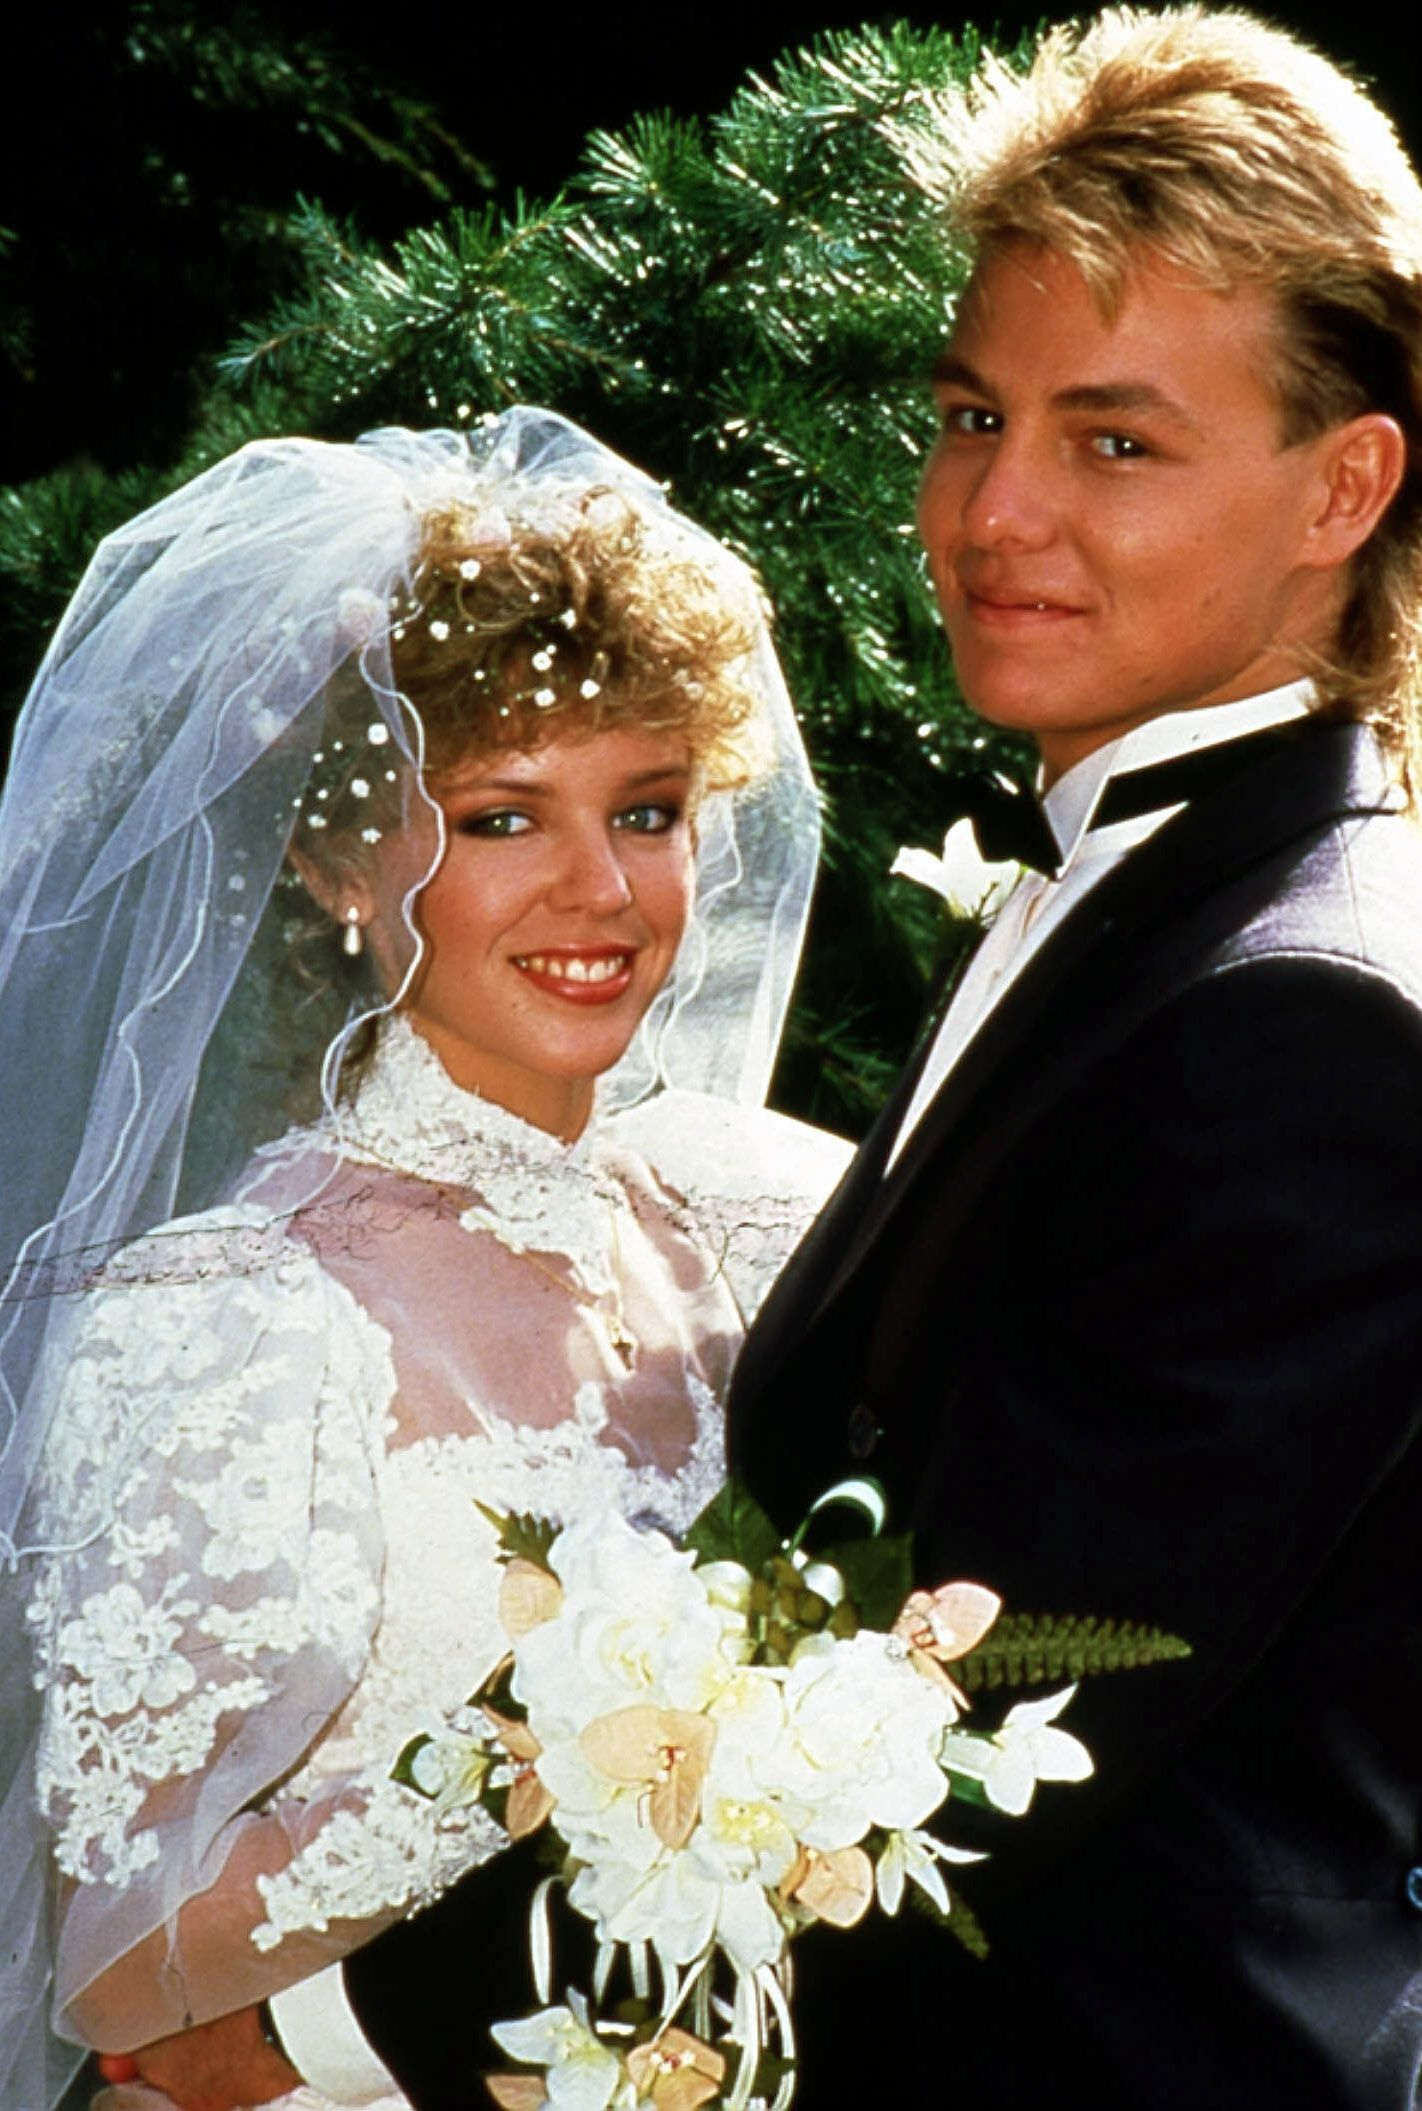 NEIGHBOURS CREDIT: GRUNDY TELEVISION KYLIE MINOGUE AS CHARLENE MITCHELL, JASON DONOVAN AS SCOTT ROBINSON PICTURE FROM T